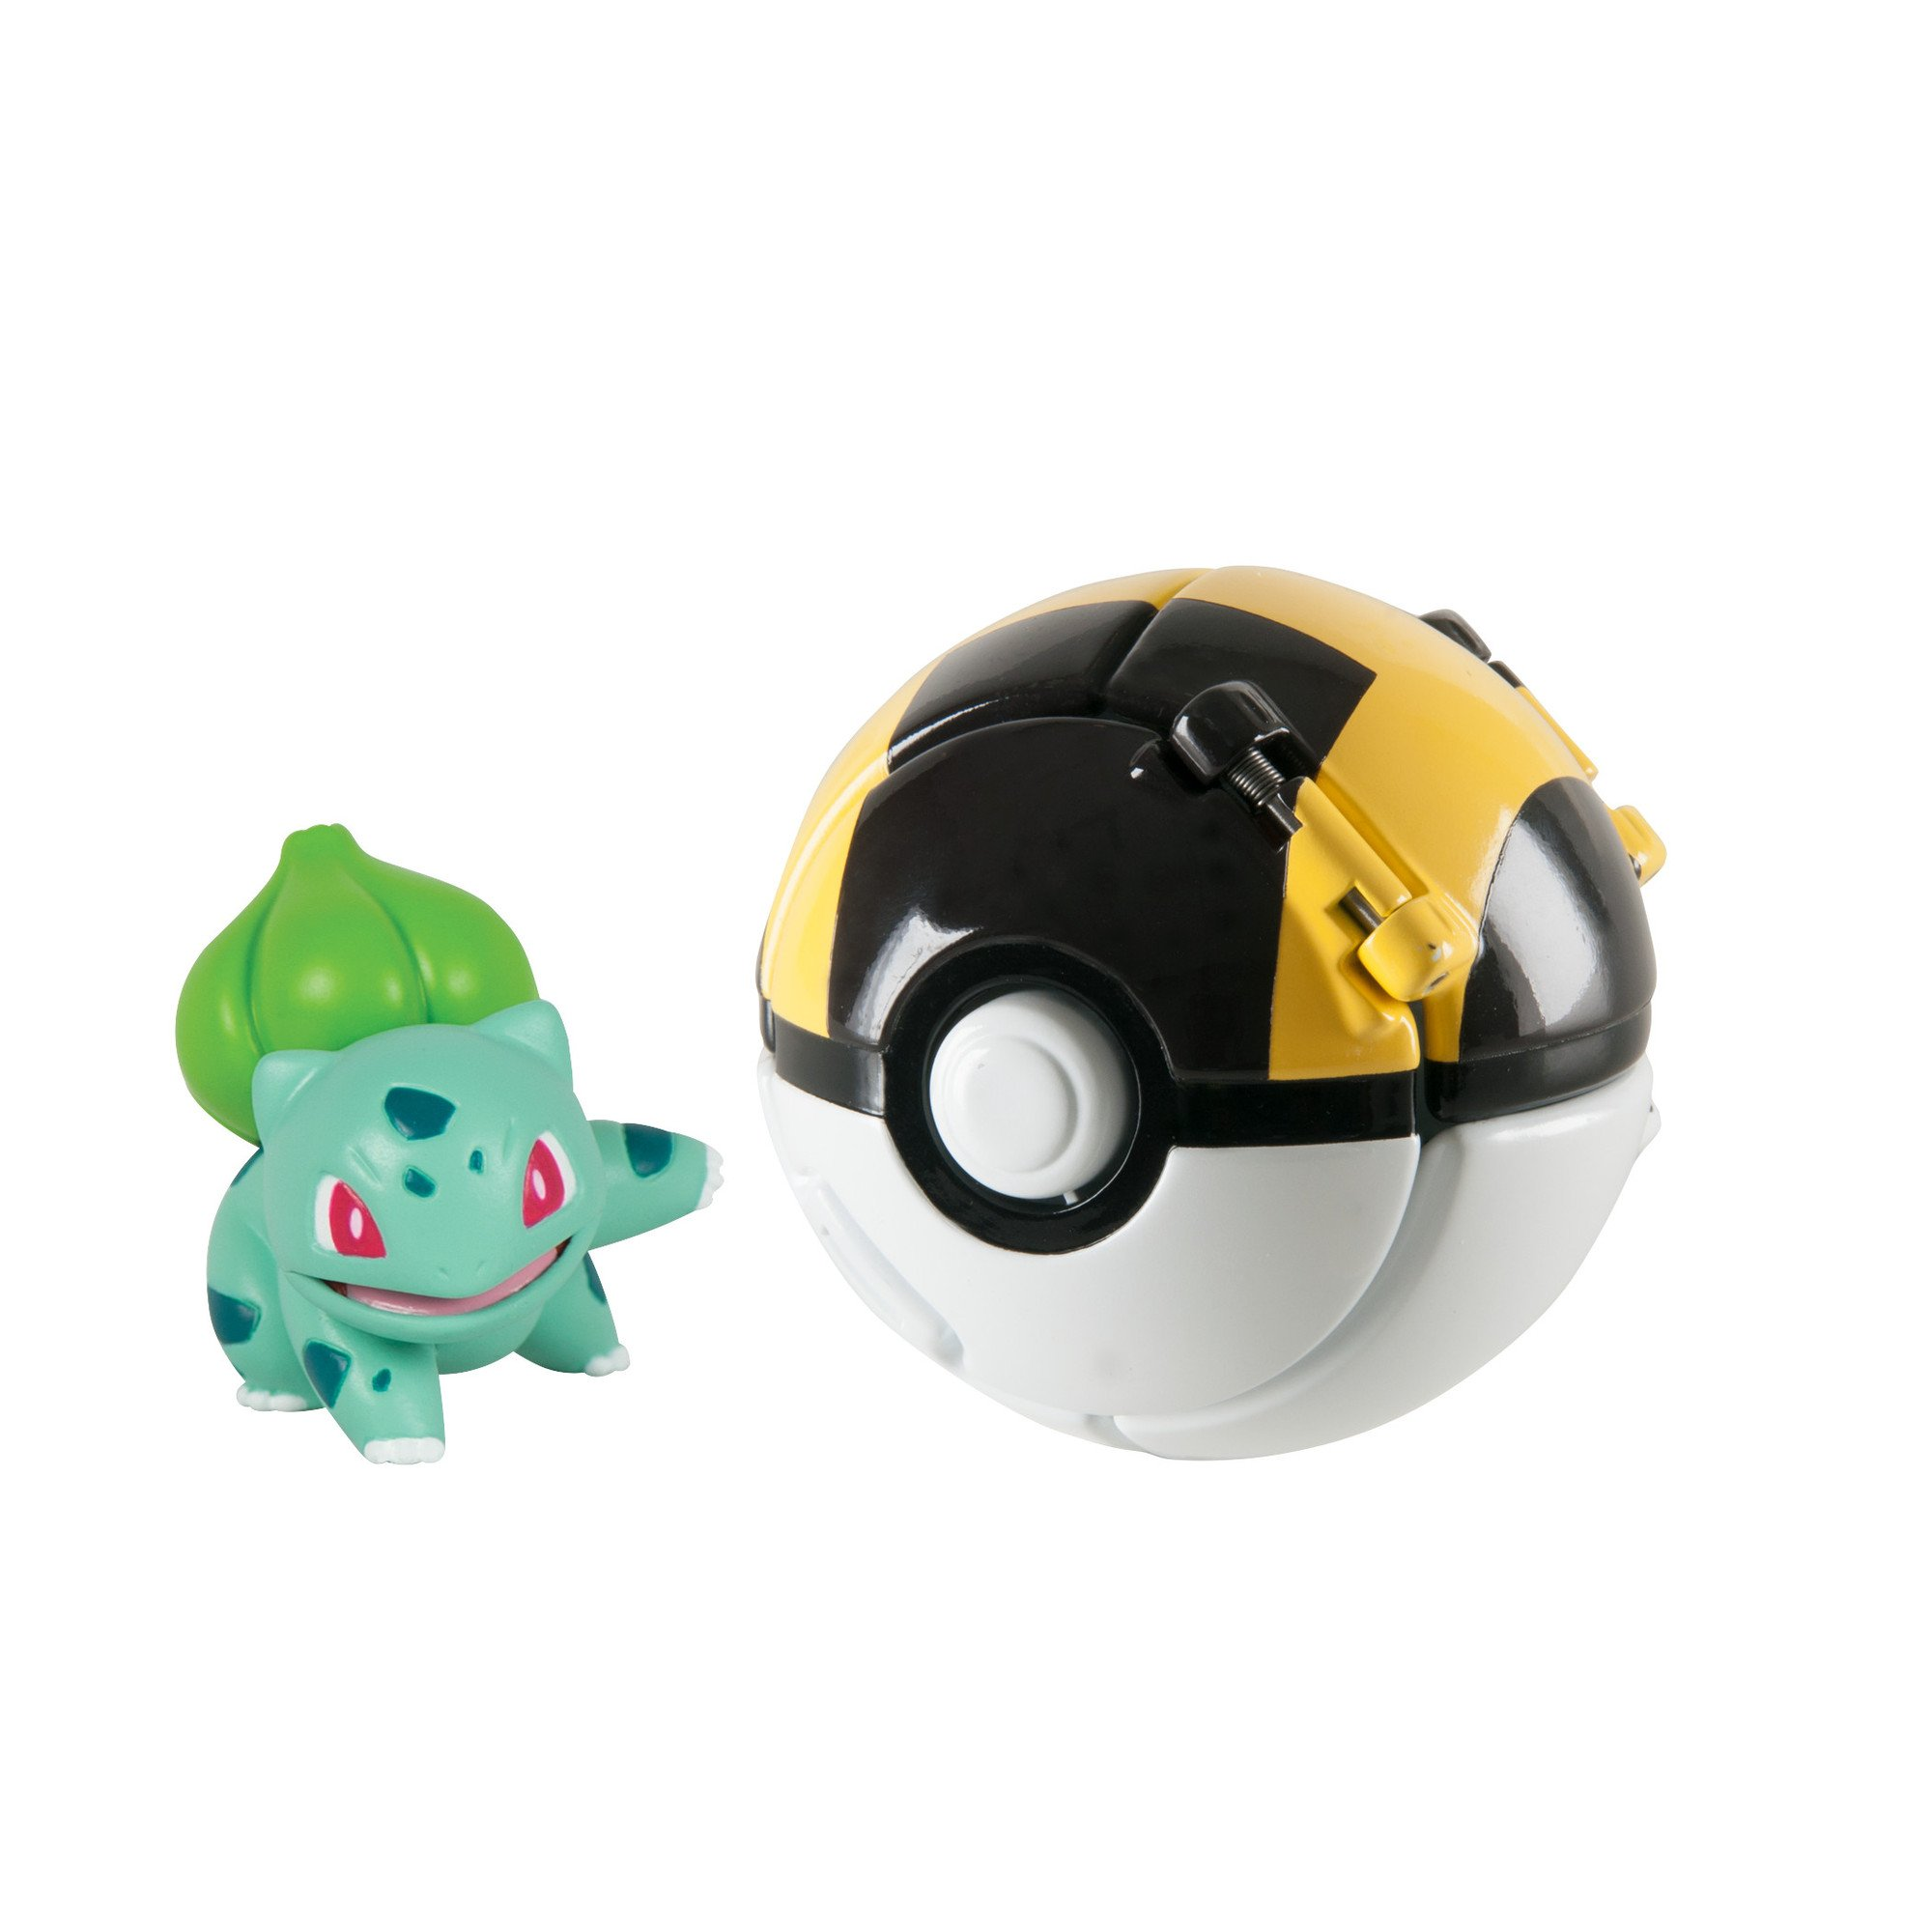 Pokémon Throw 'N' Pop Poké Ball, Bulbasaur and Ultra Ball